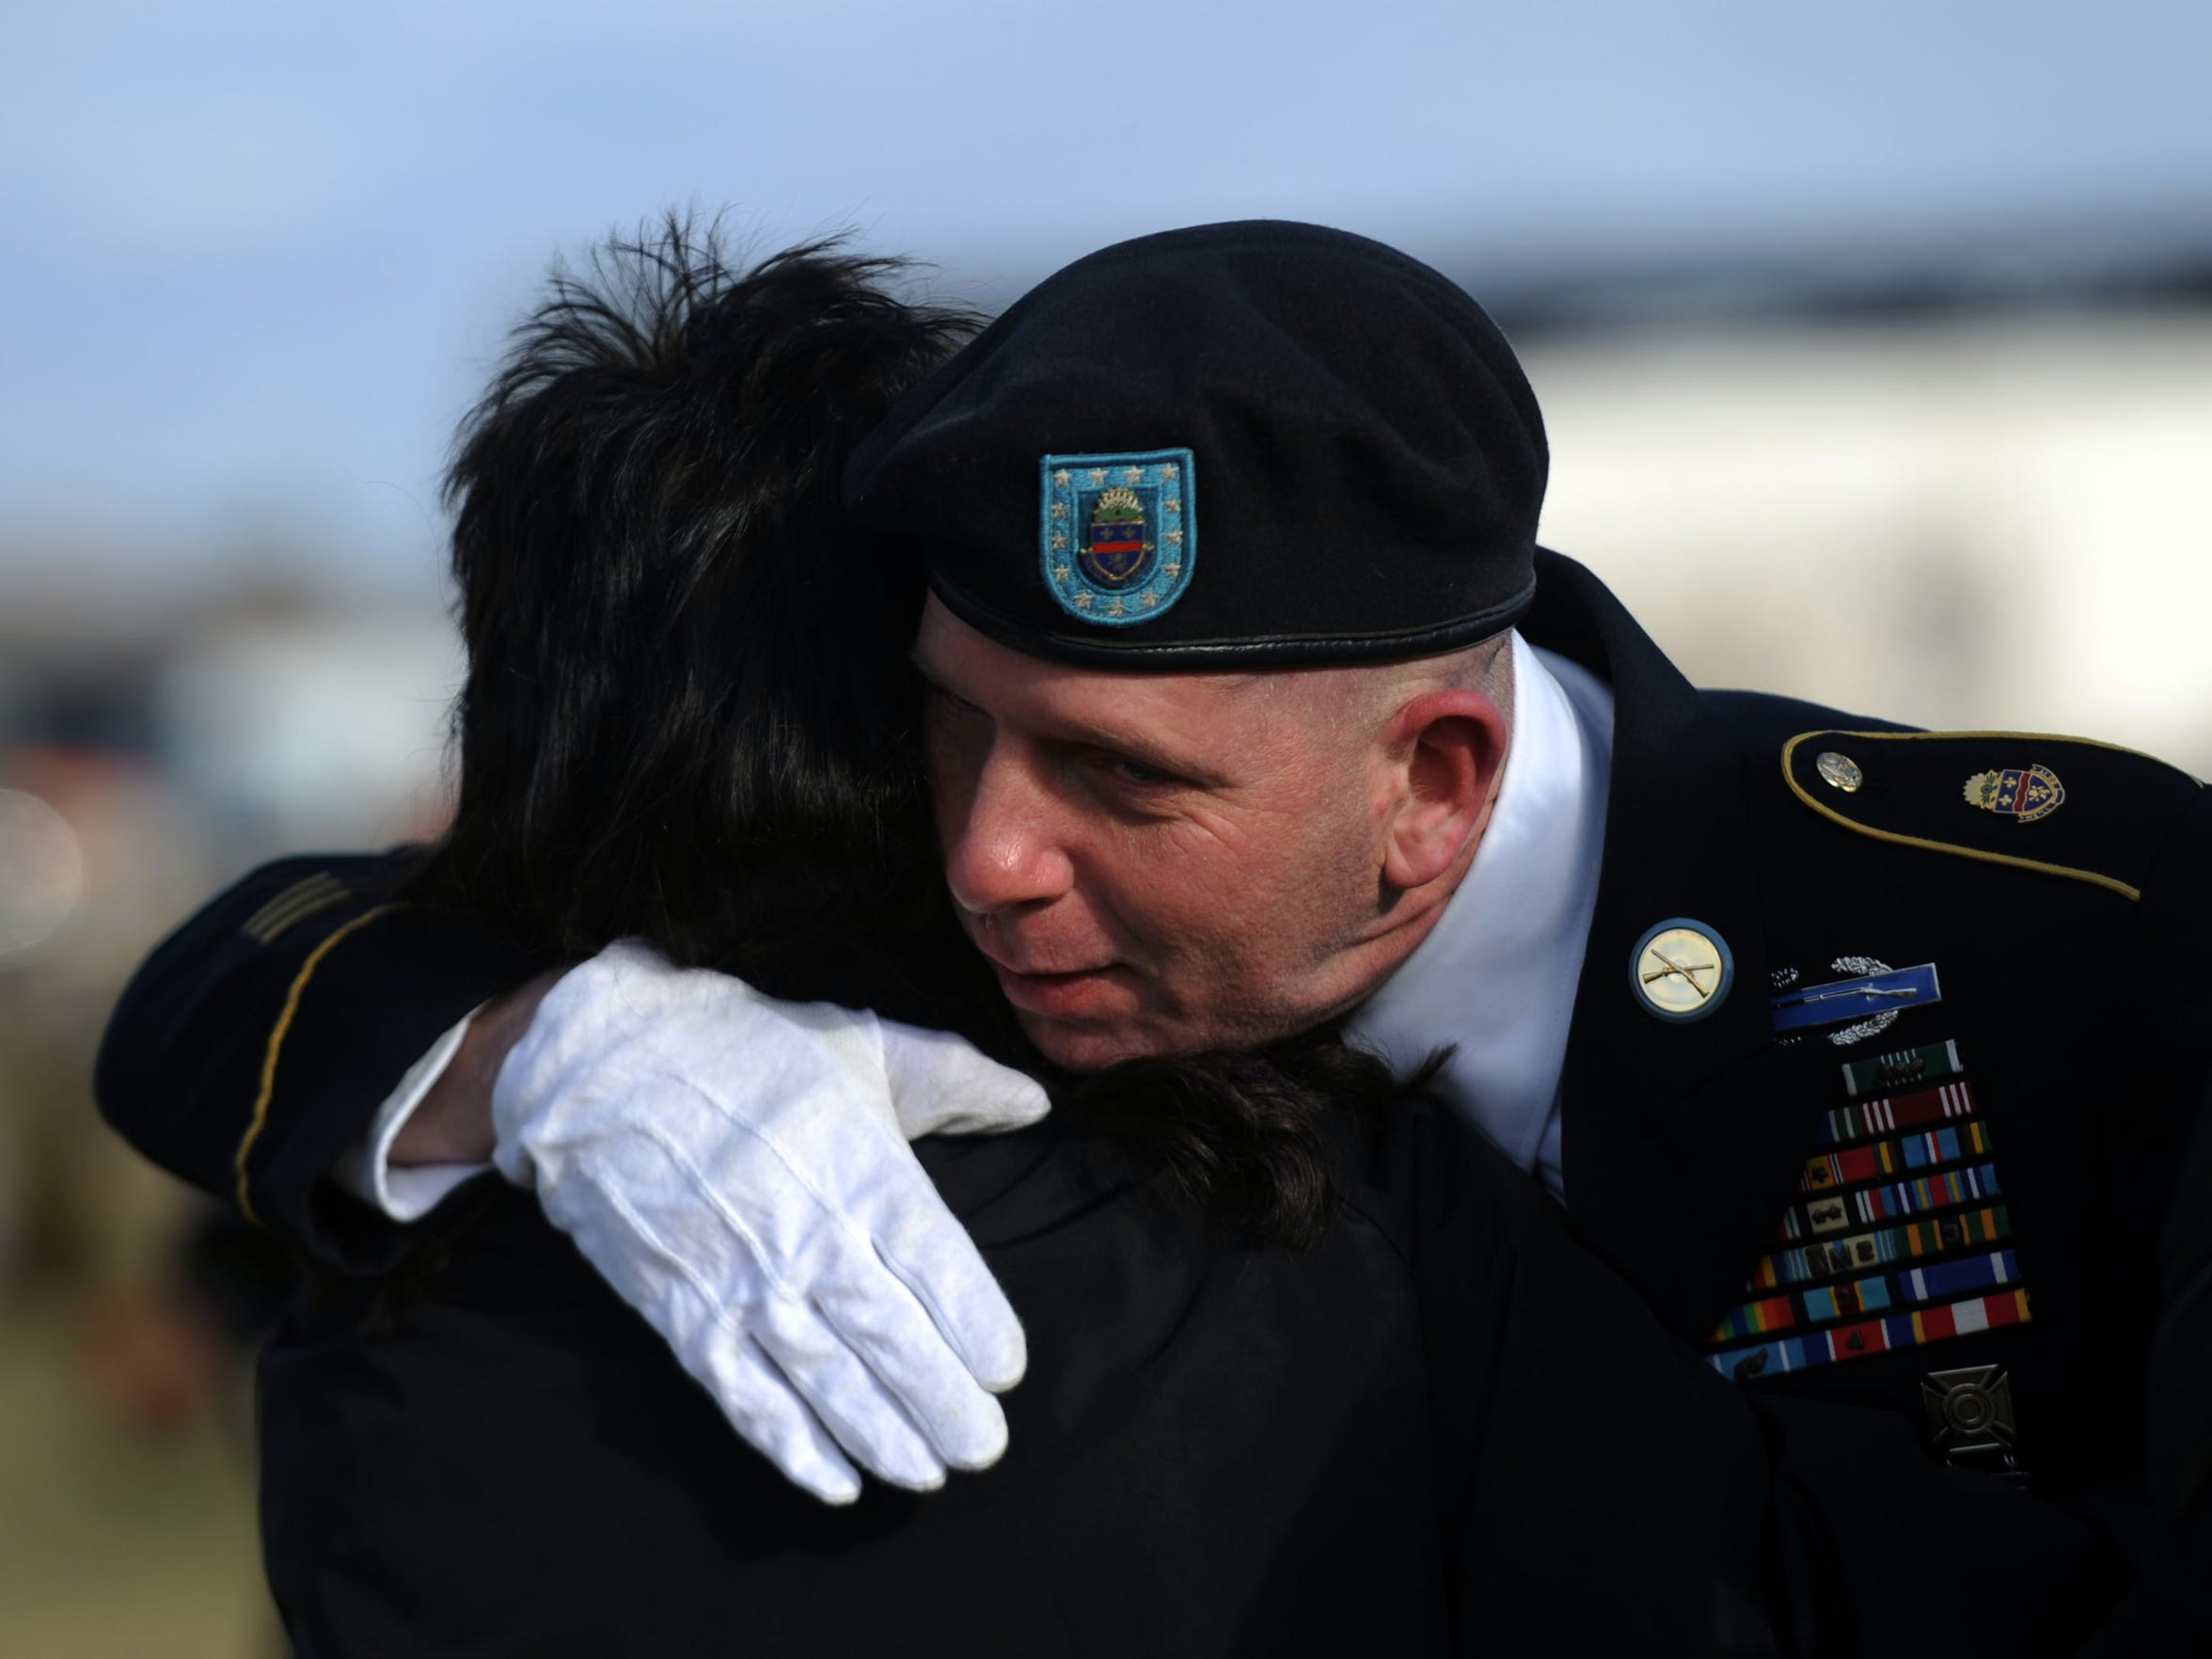 Jason Leasher hugs a funeral attendee Tuesday, Jan. 30, 2018, at Greenlawn Cemetery in Chillicothe. Leasher helped coordinate a graveside service for fellow veteran Mark Elkins after his body initially went unclaimed.